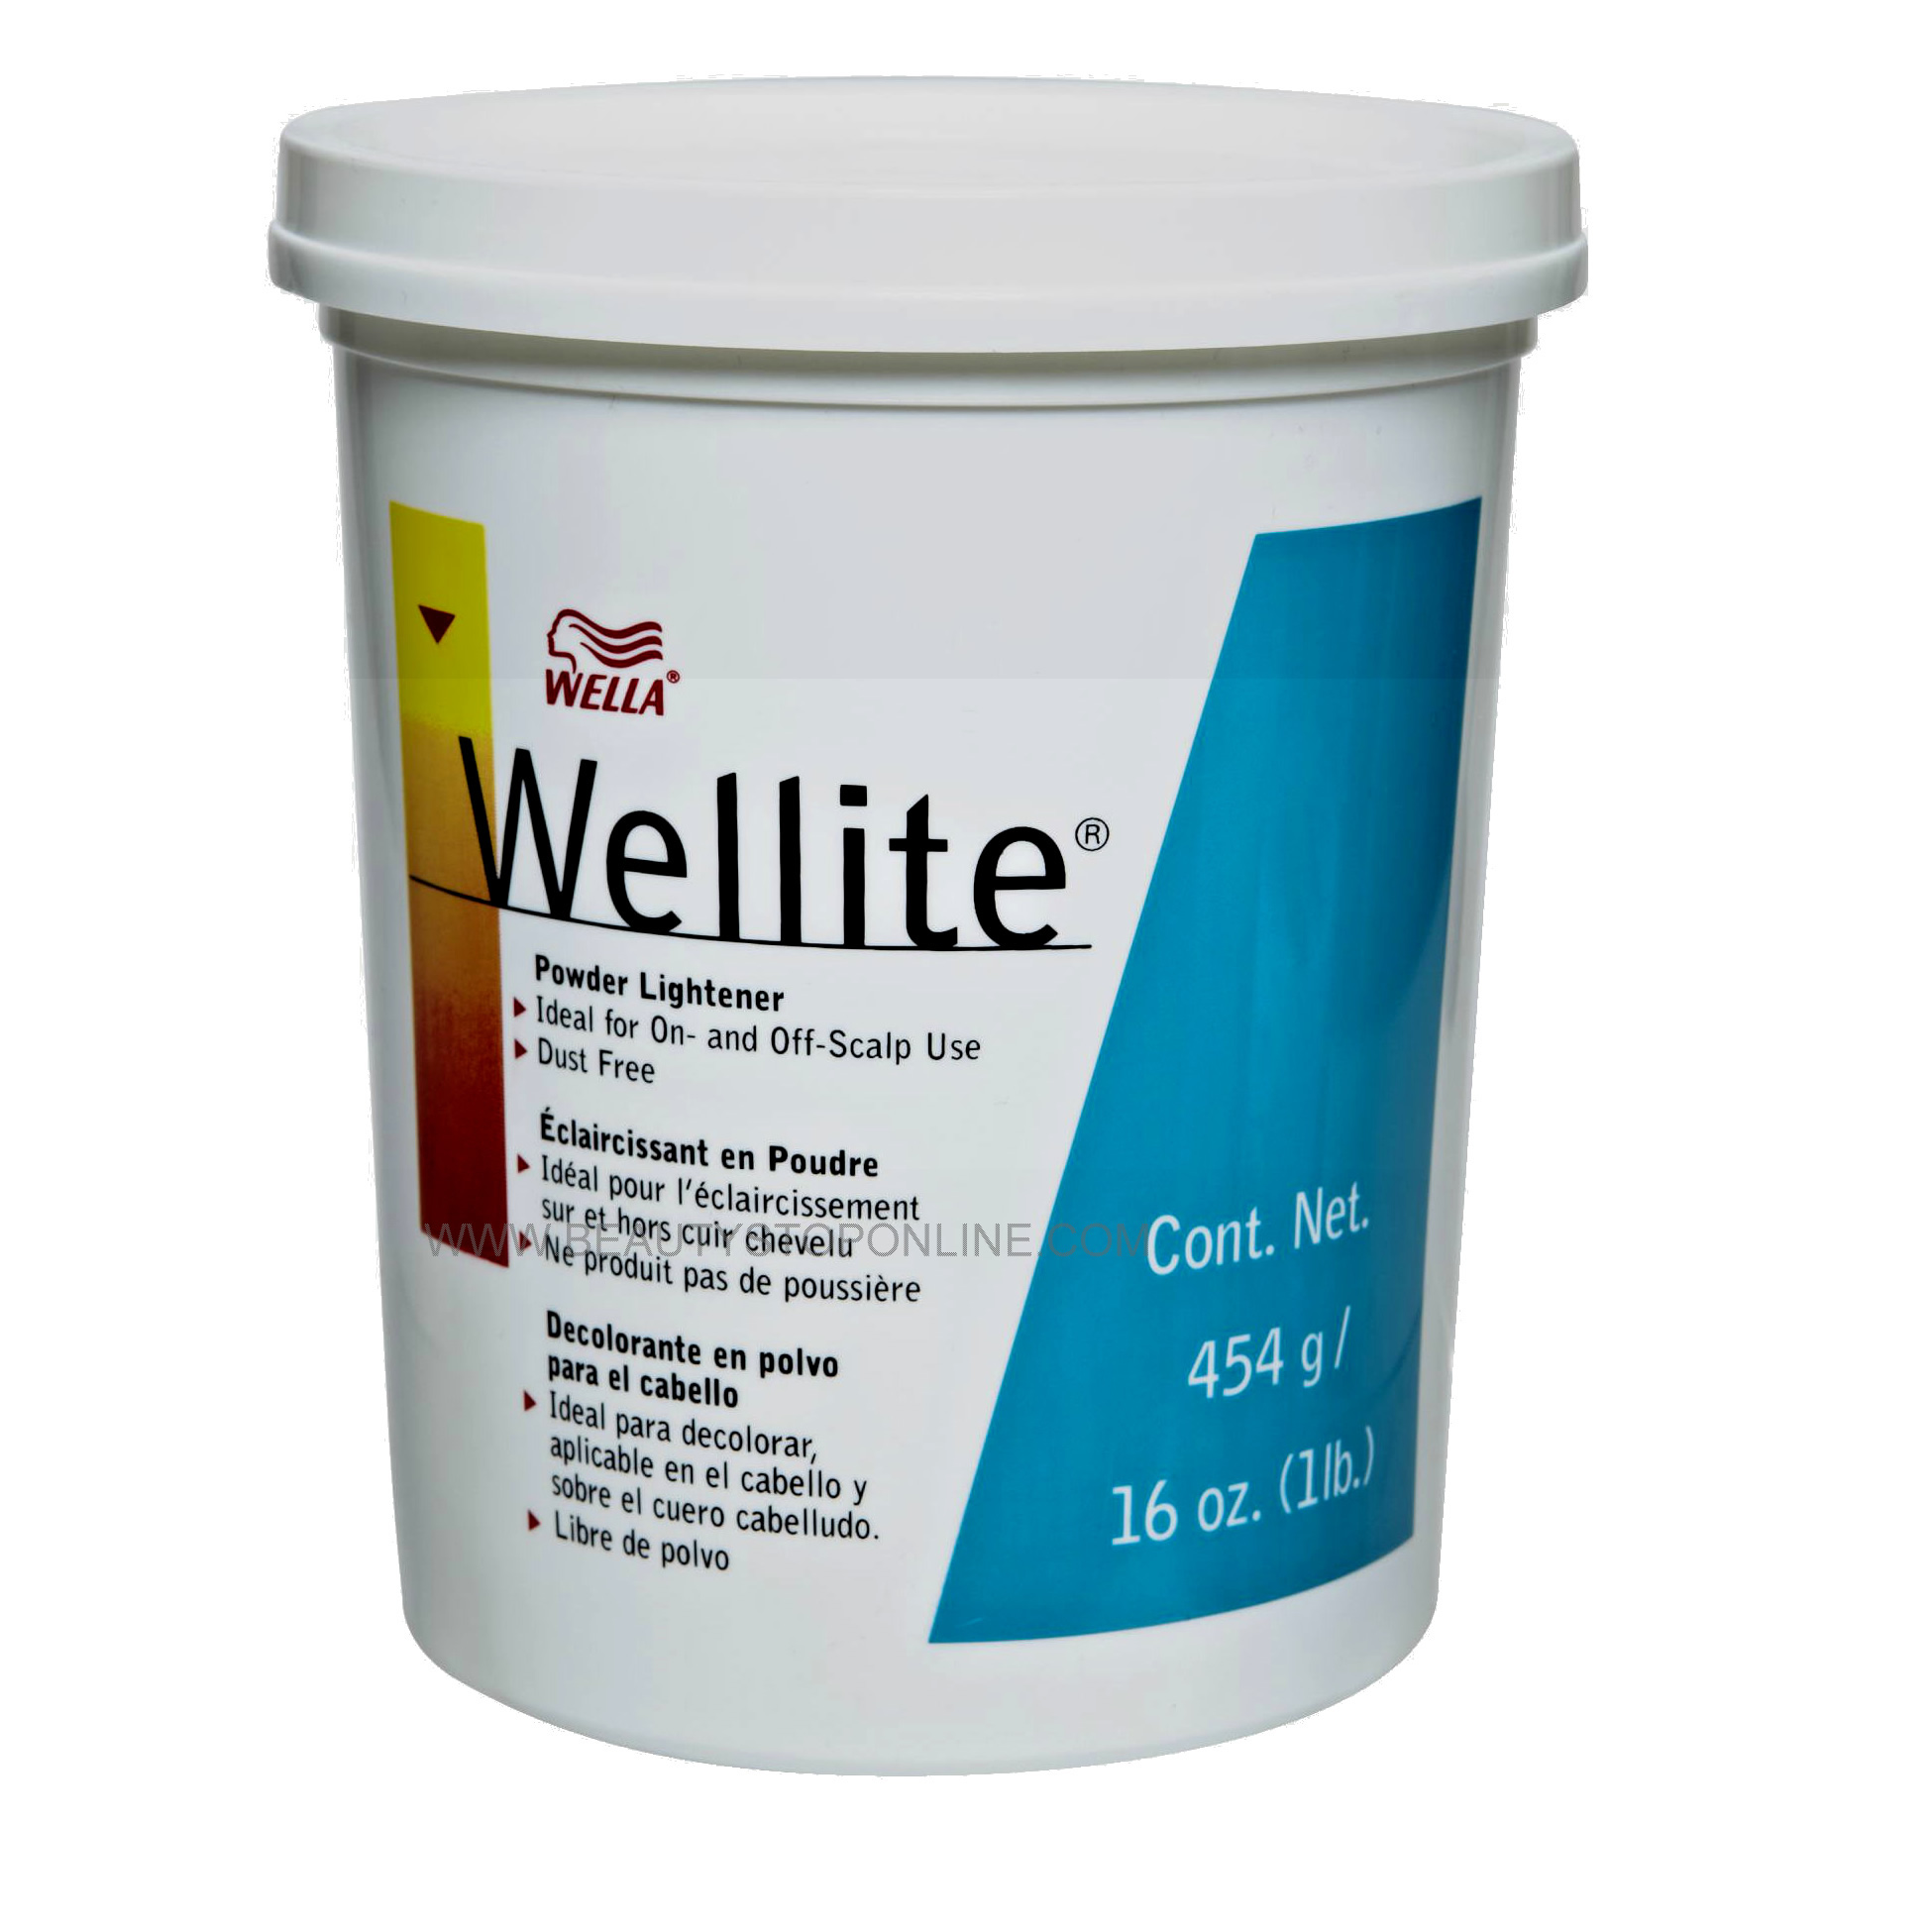 Wella Wellite Powder Lightener 16 oz Tub